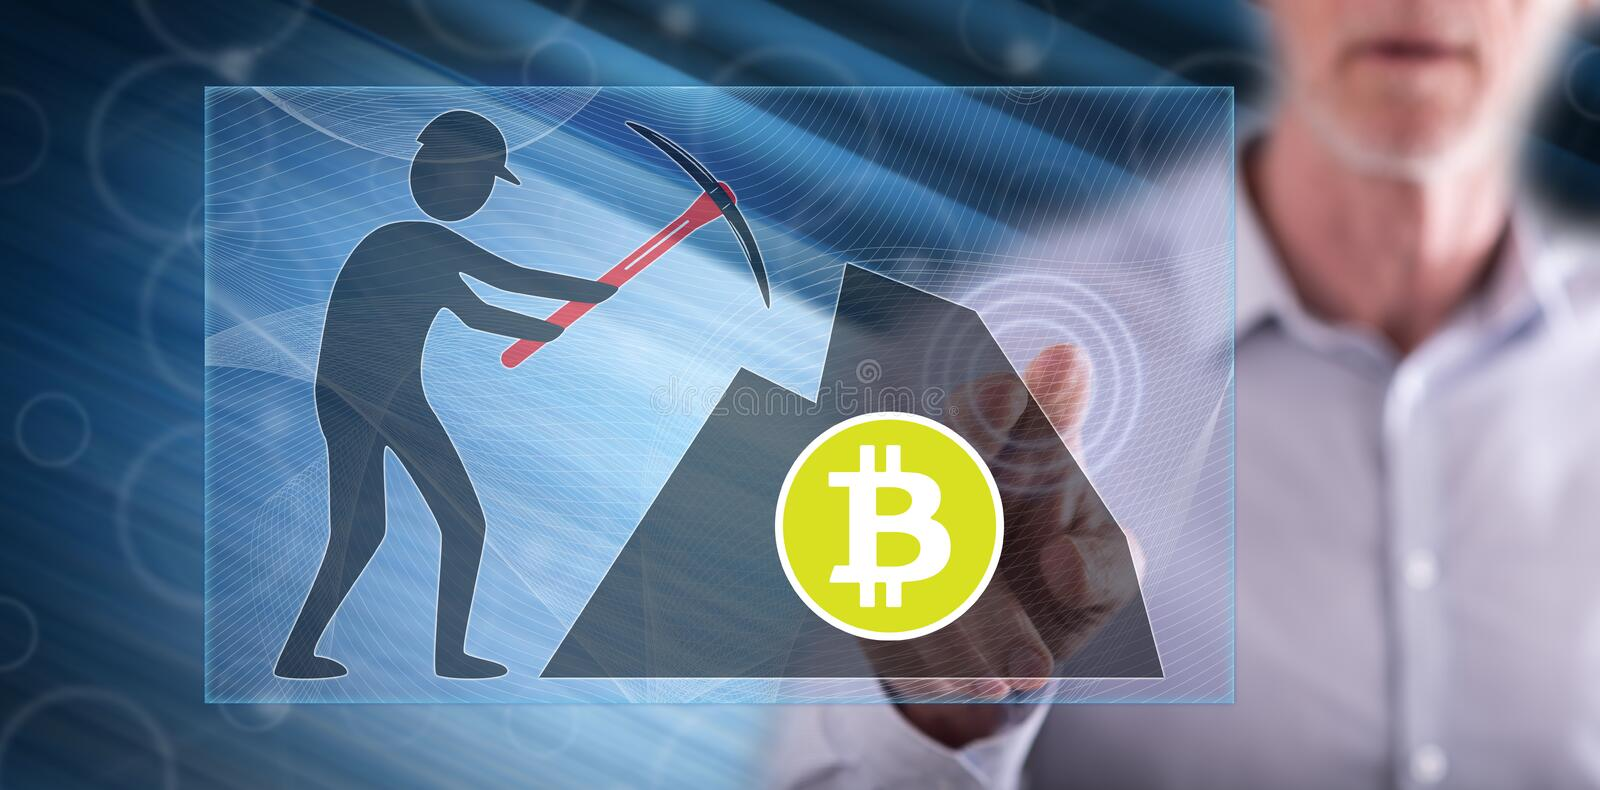 Man touching a bitcoin mining concept stock image